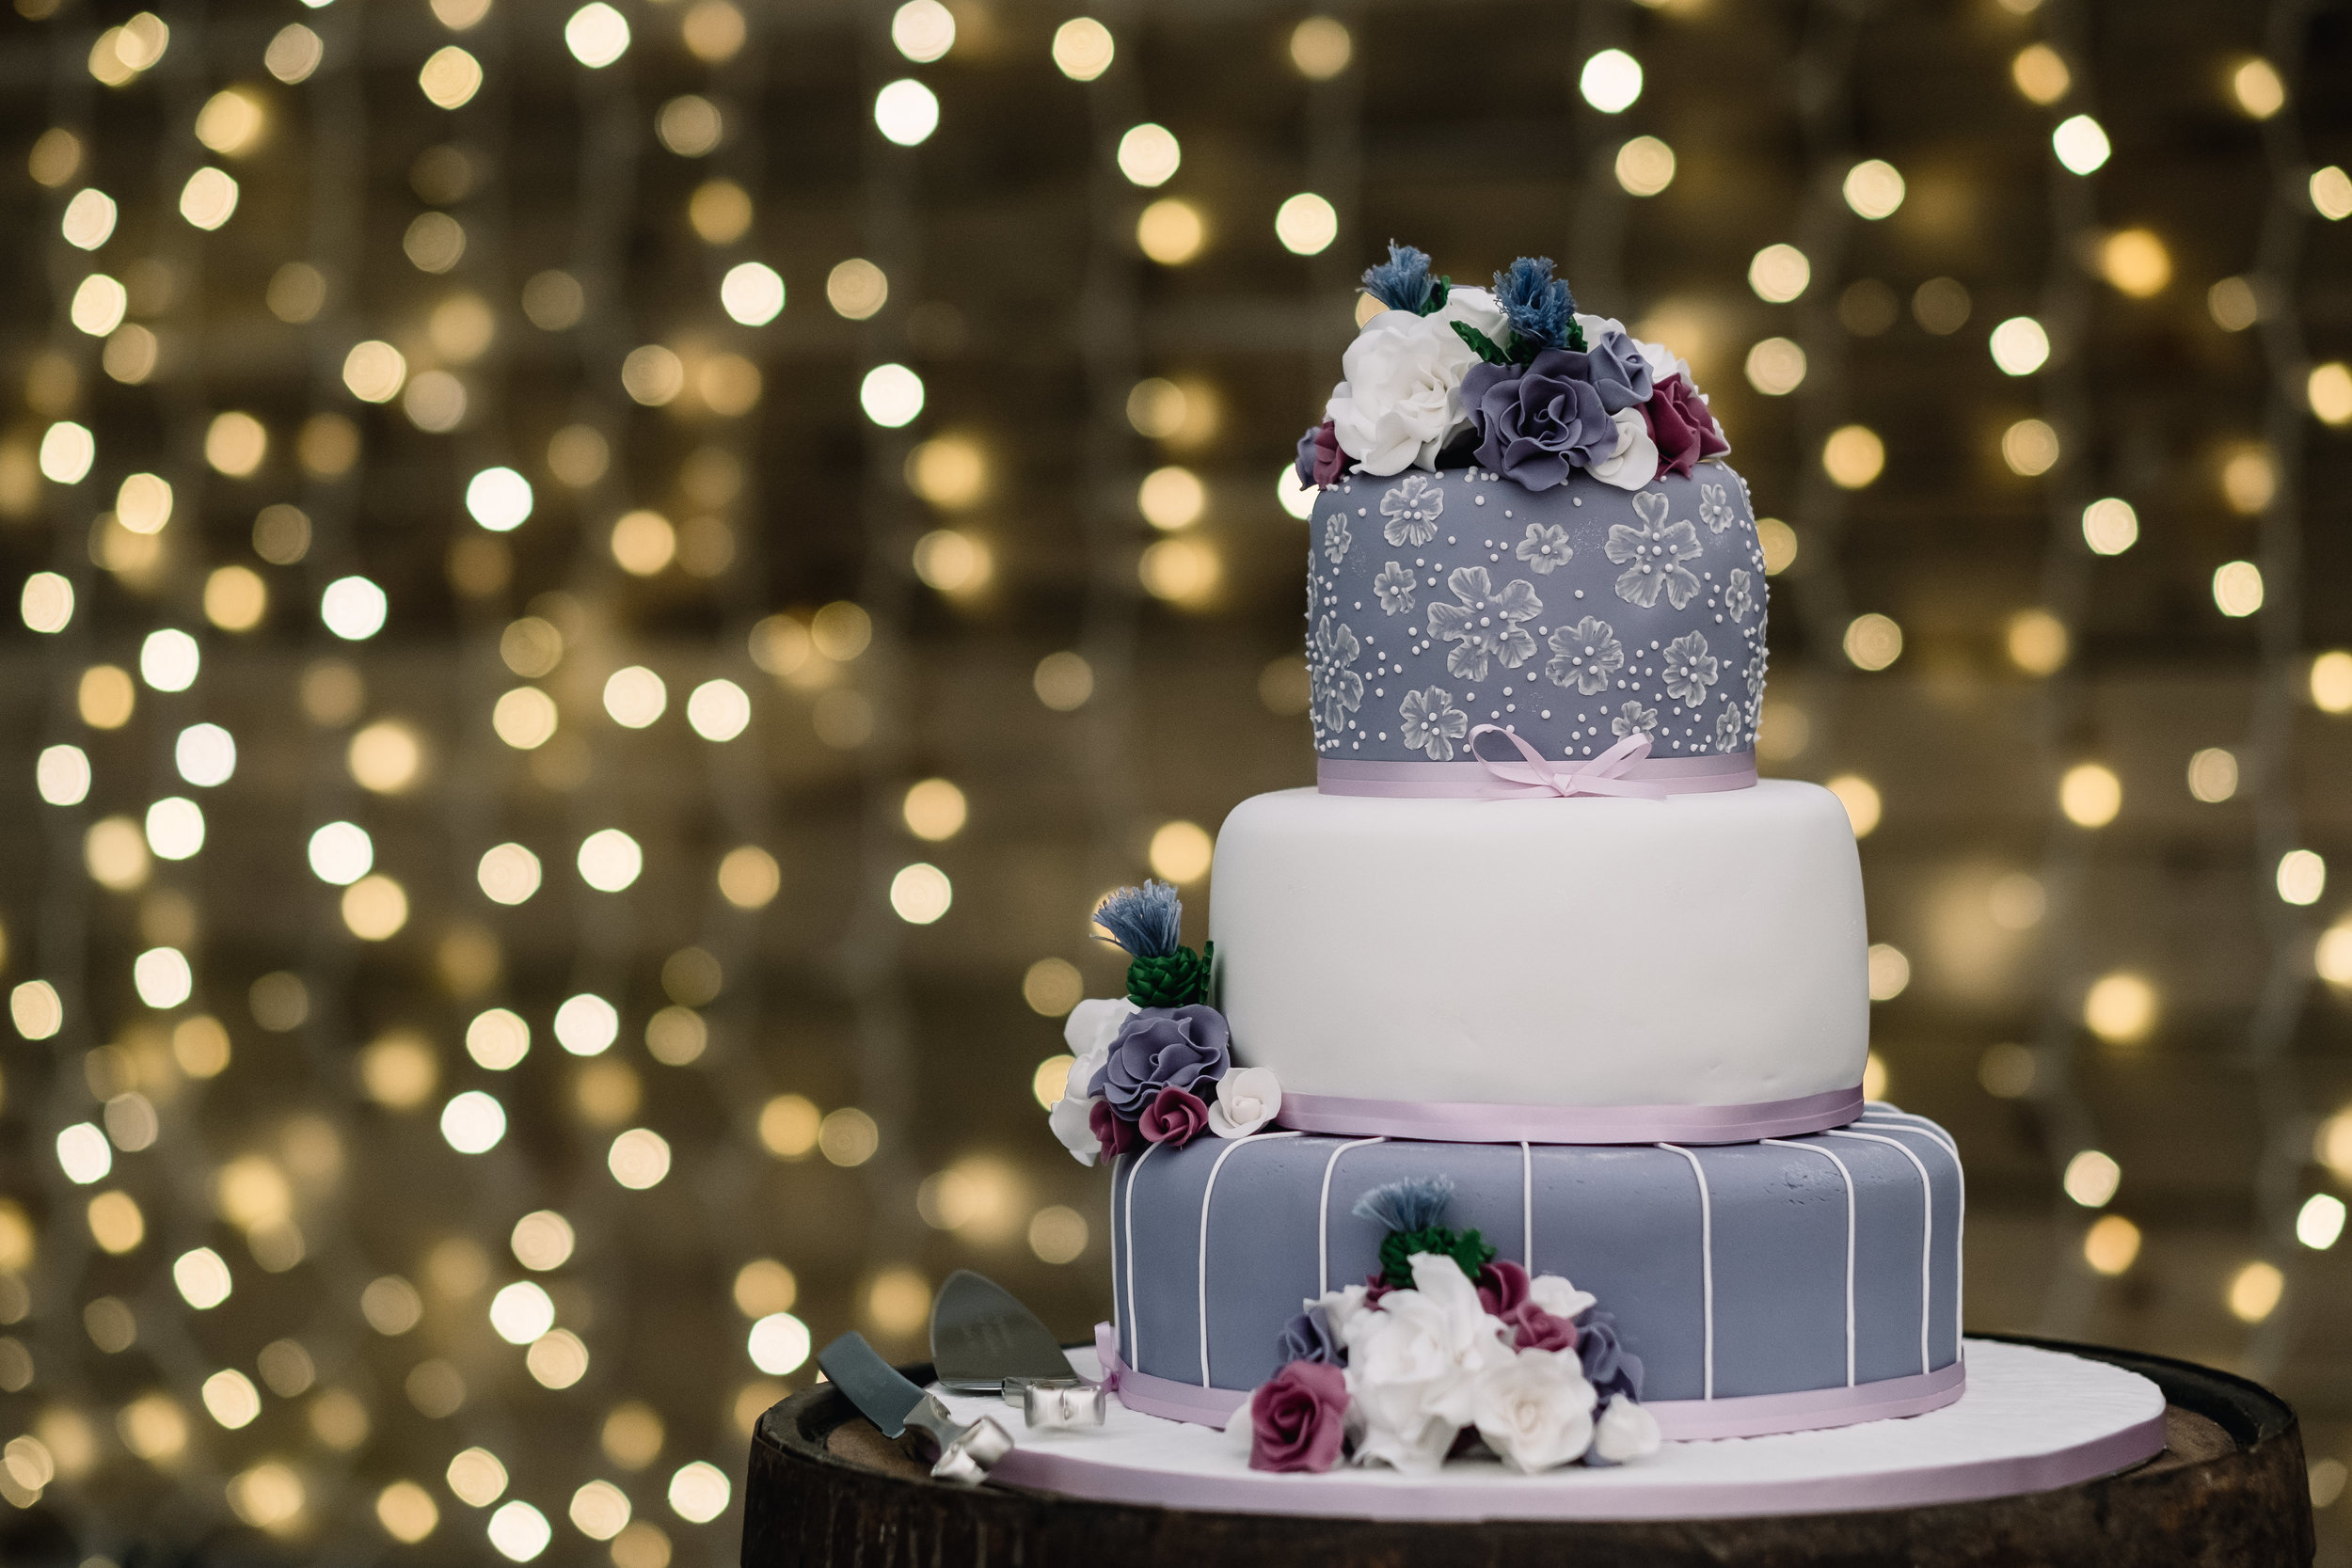 Cake: Make by a family member |  The Cow Shed   Pick up a set of a 2m x 2m twinkly lights for £42 from  Lights 4 Fun .